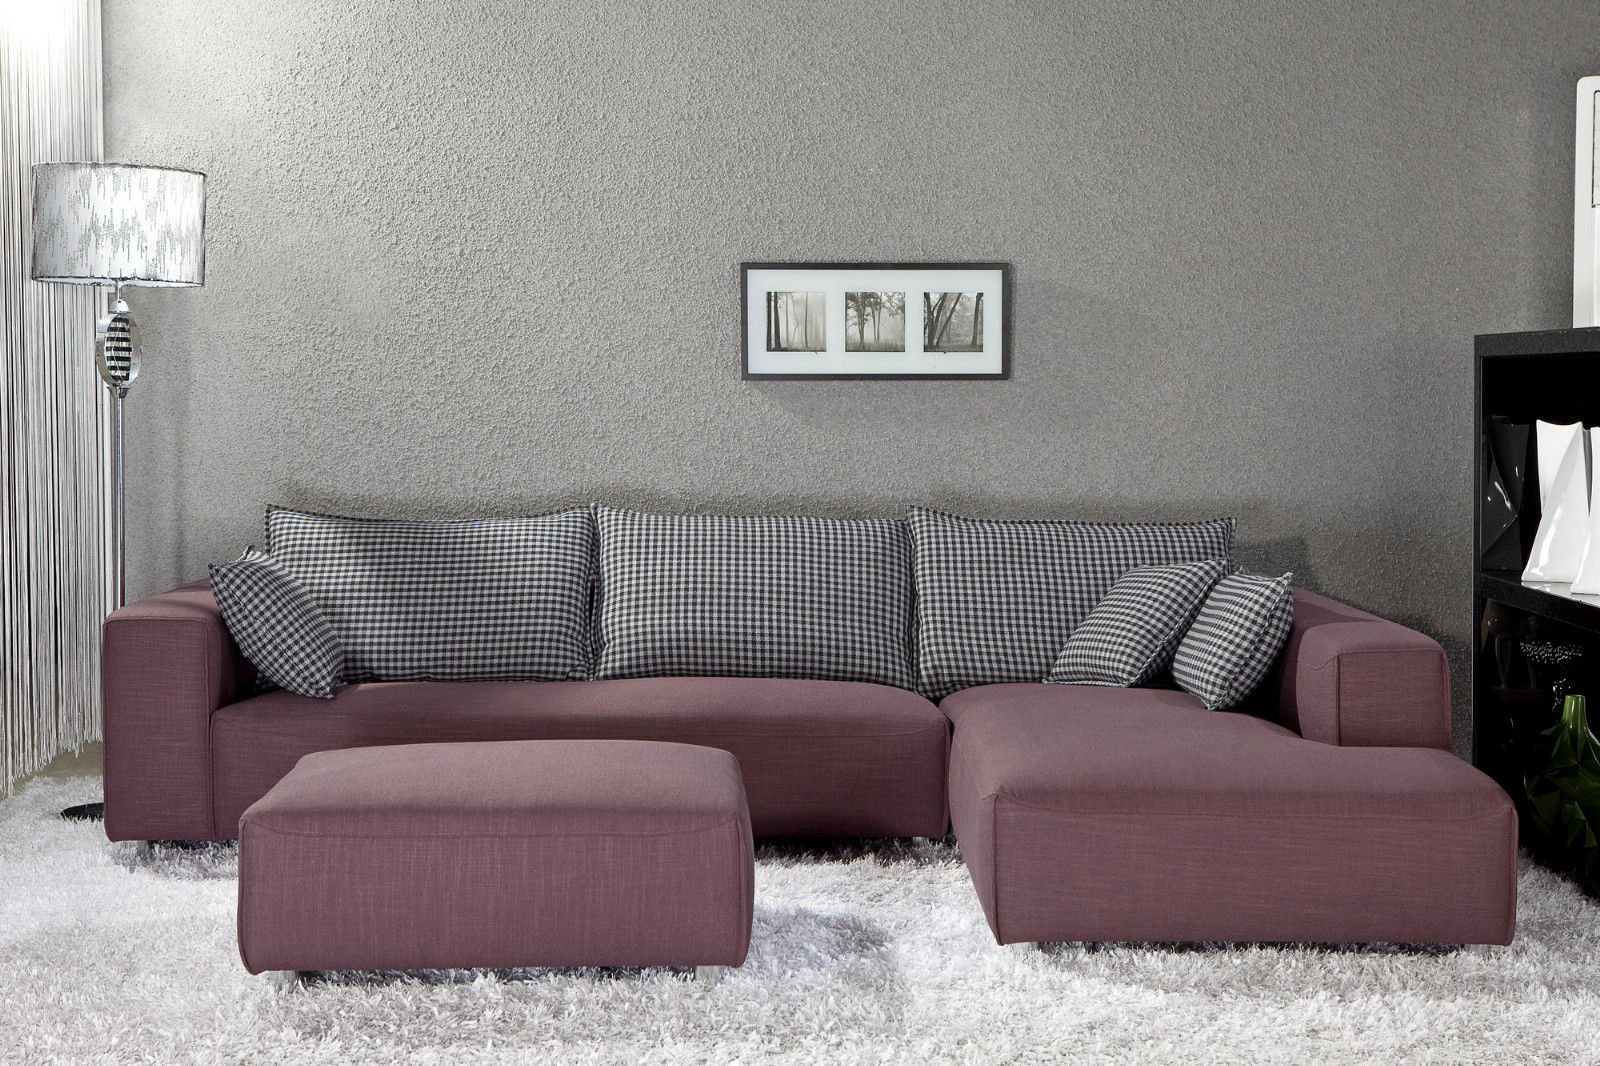 Sectional Sofa For Small Spaces Sectional Sofa For Small Spaces Homesfeed